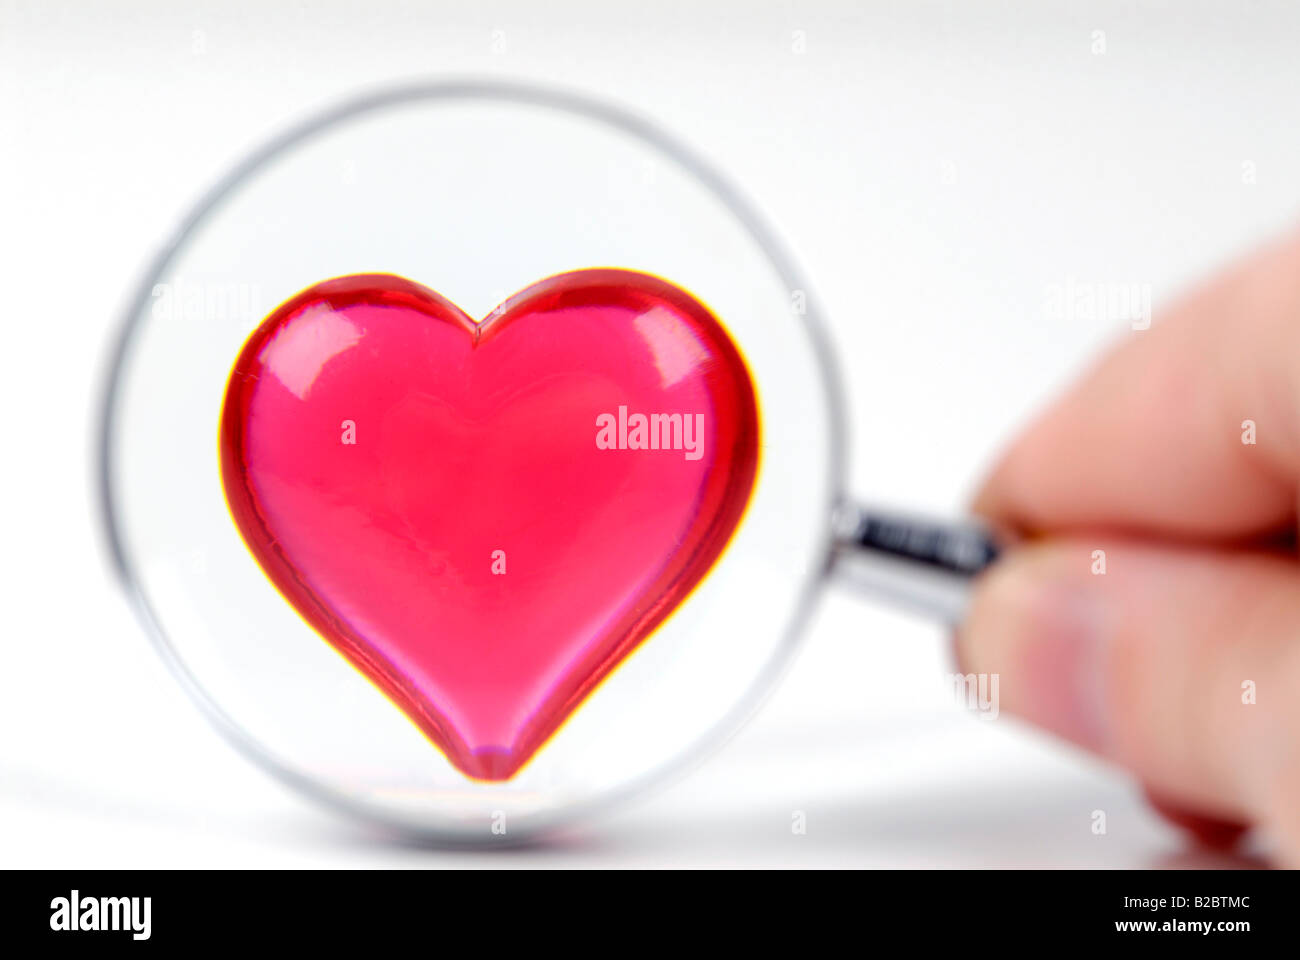 Heart under a magnifying glass - Stock Image